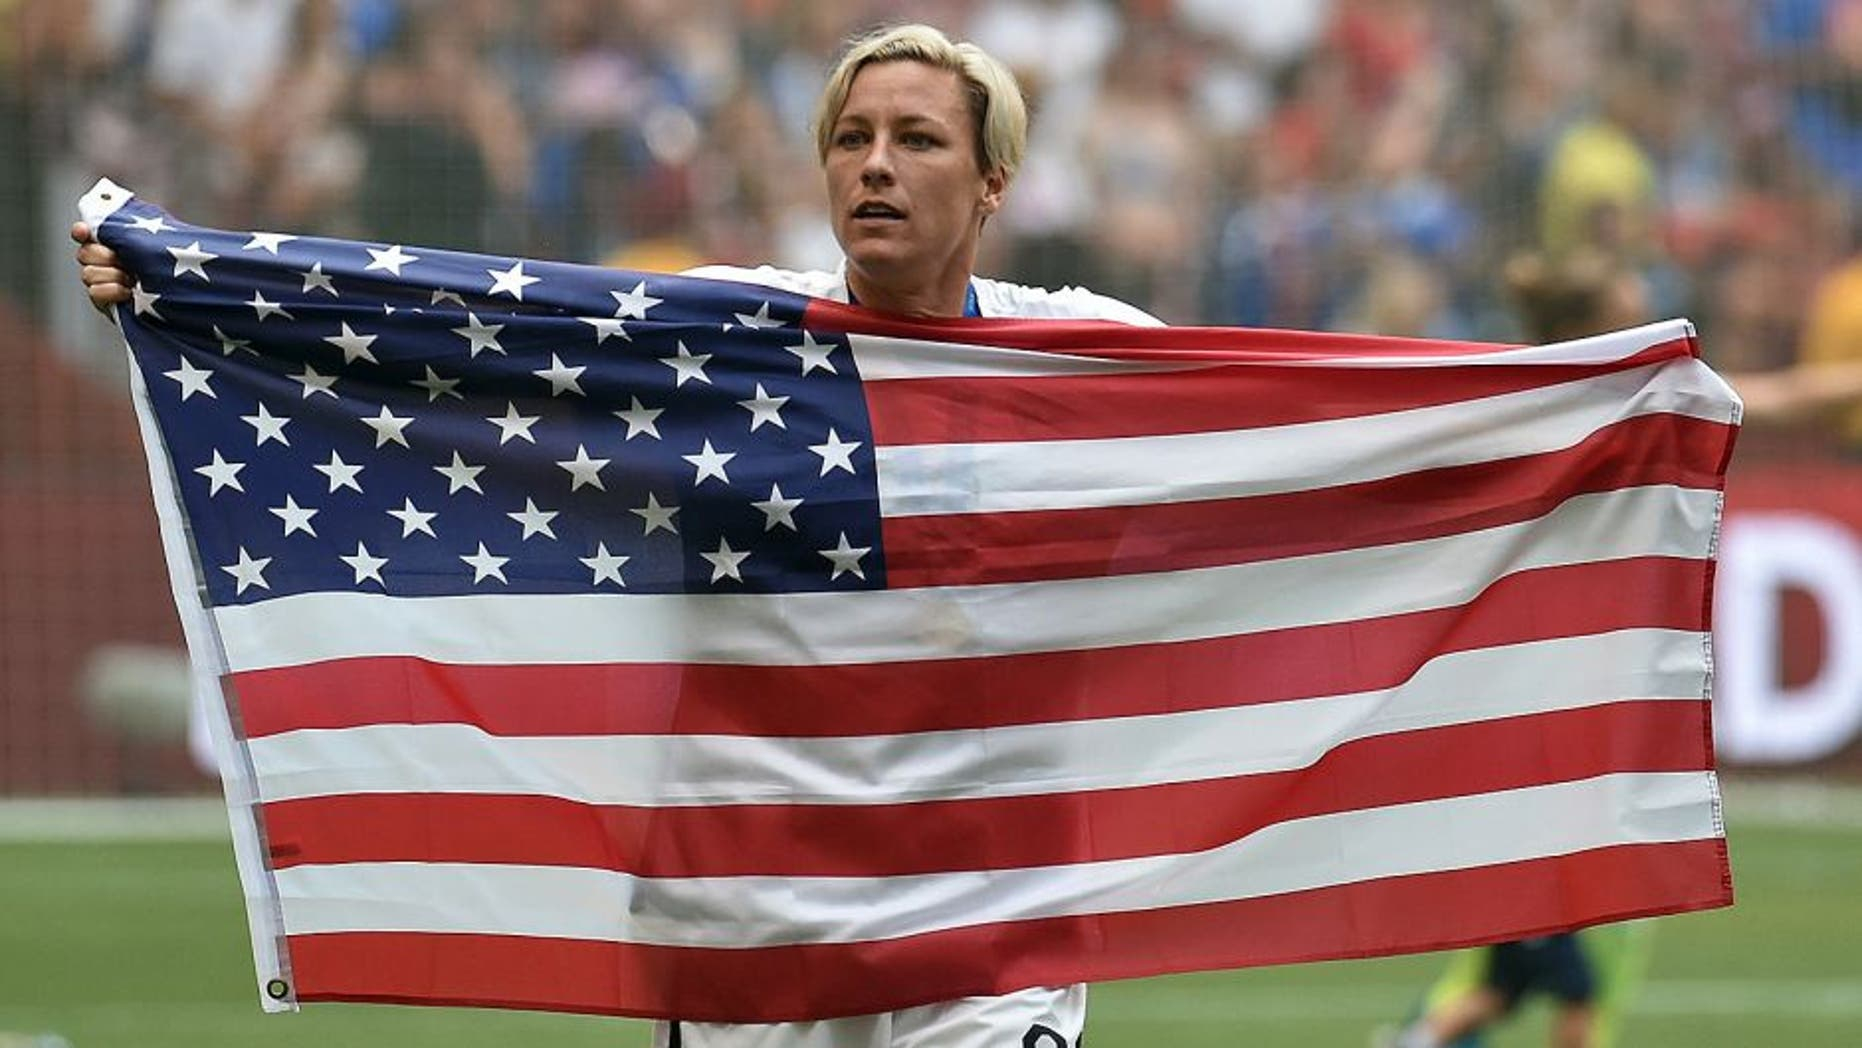 VANCOUVER, BC - JULY 05: Abby Wambach #20 of the United States celebrates the 5-2 victory against Japan in the FIFA Women's World Cup Canada 2015 Final at BC Place Stadium on July 5, 2015 in Vancouver, Canada. (Photo by Rich Lam/Getty Images)